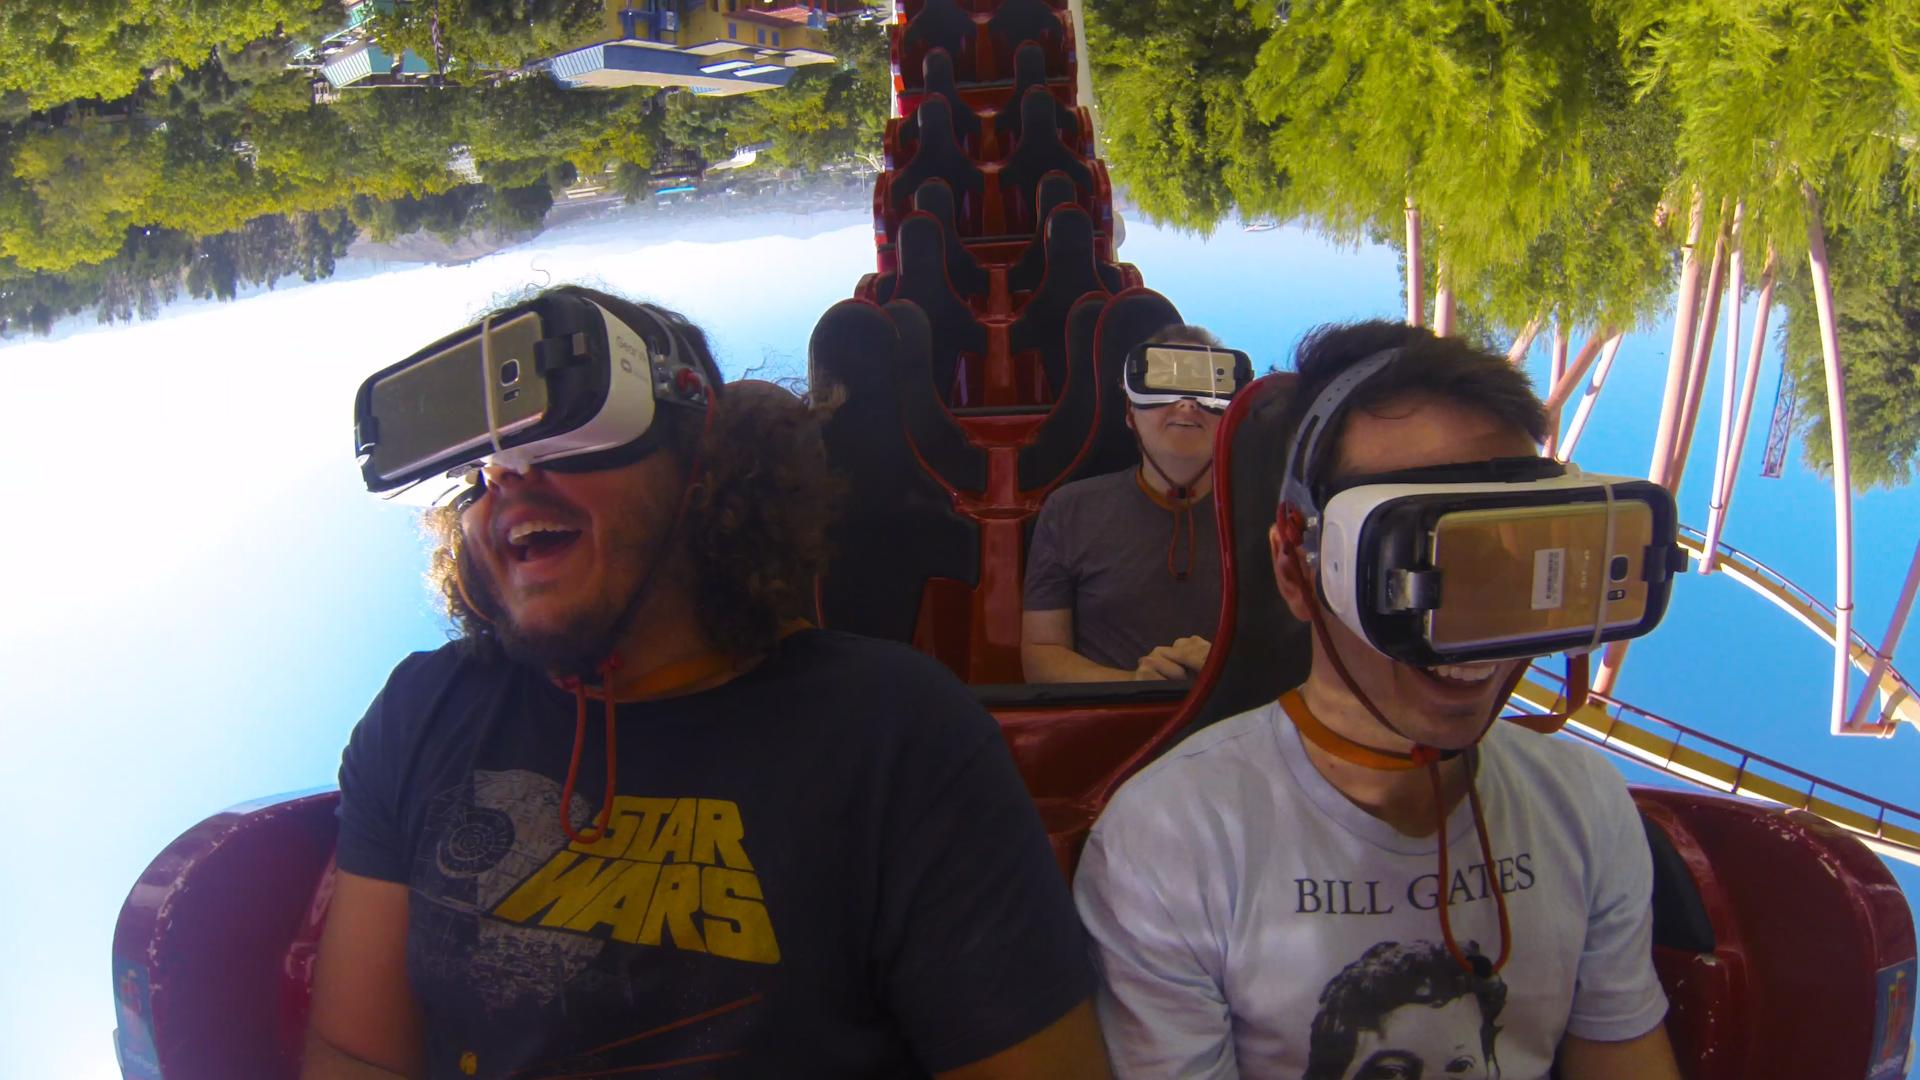 Virtual Reality and Rollercoasters like Peanut Butter and Jelly